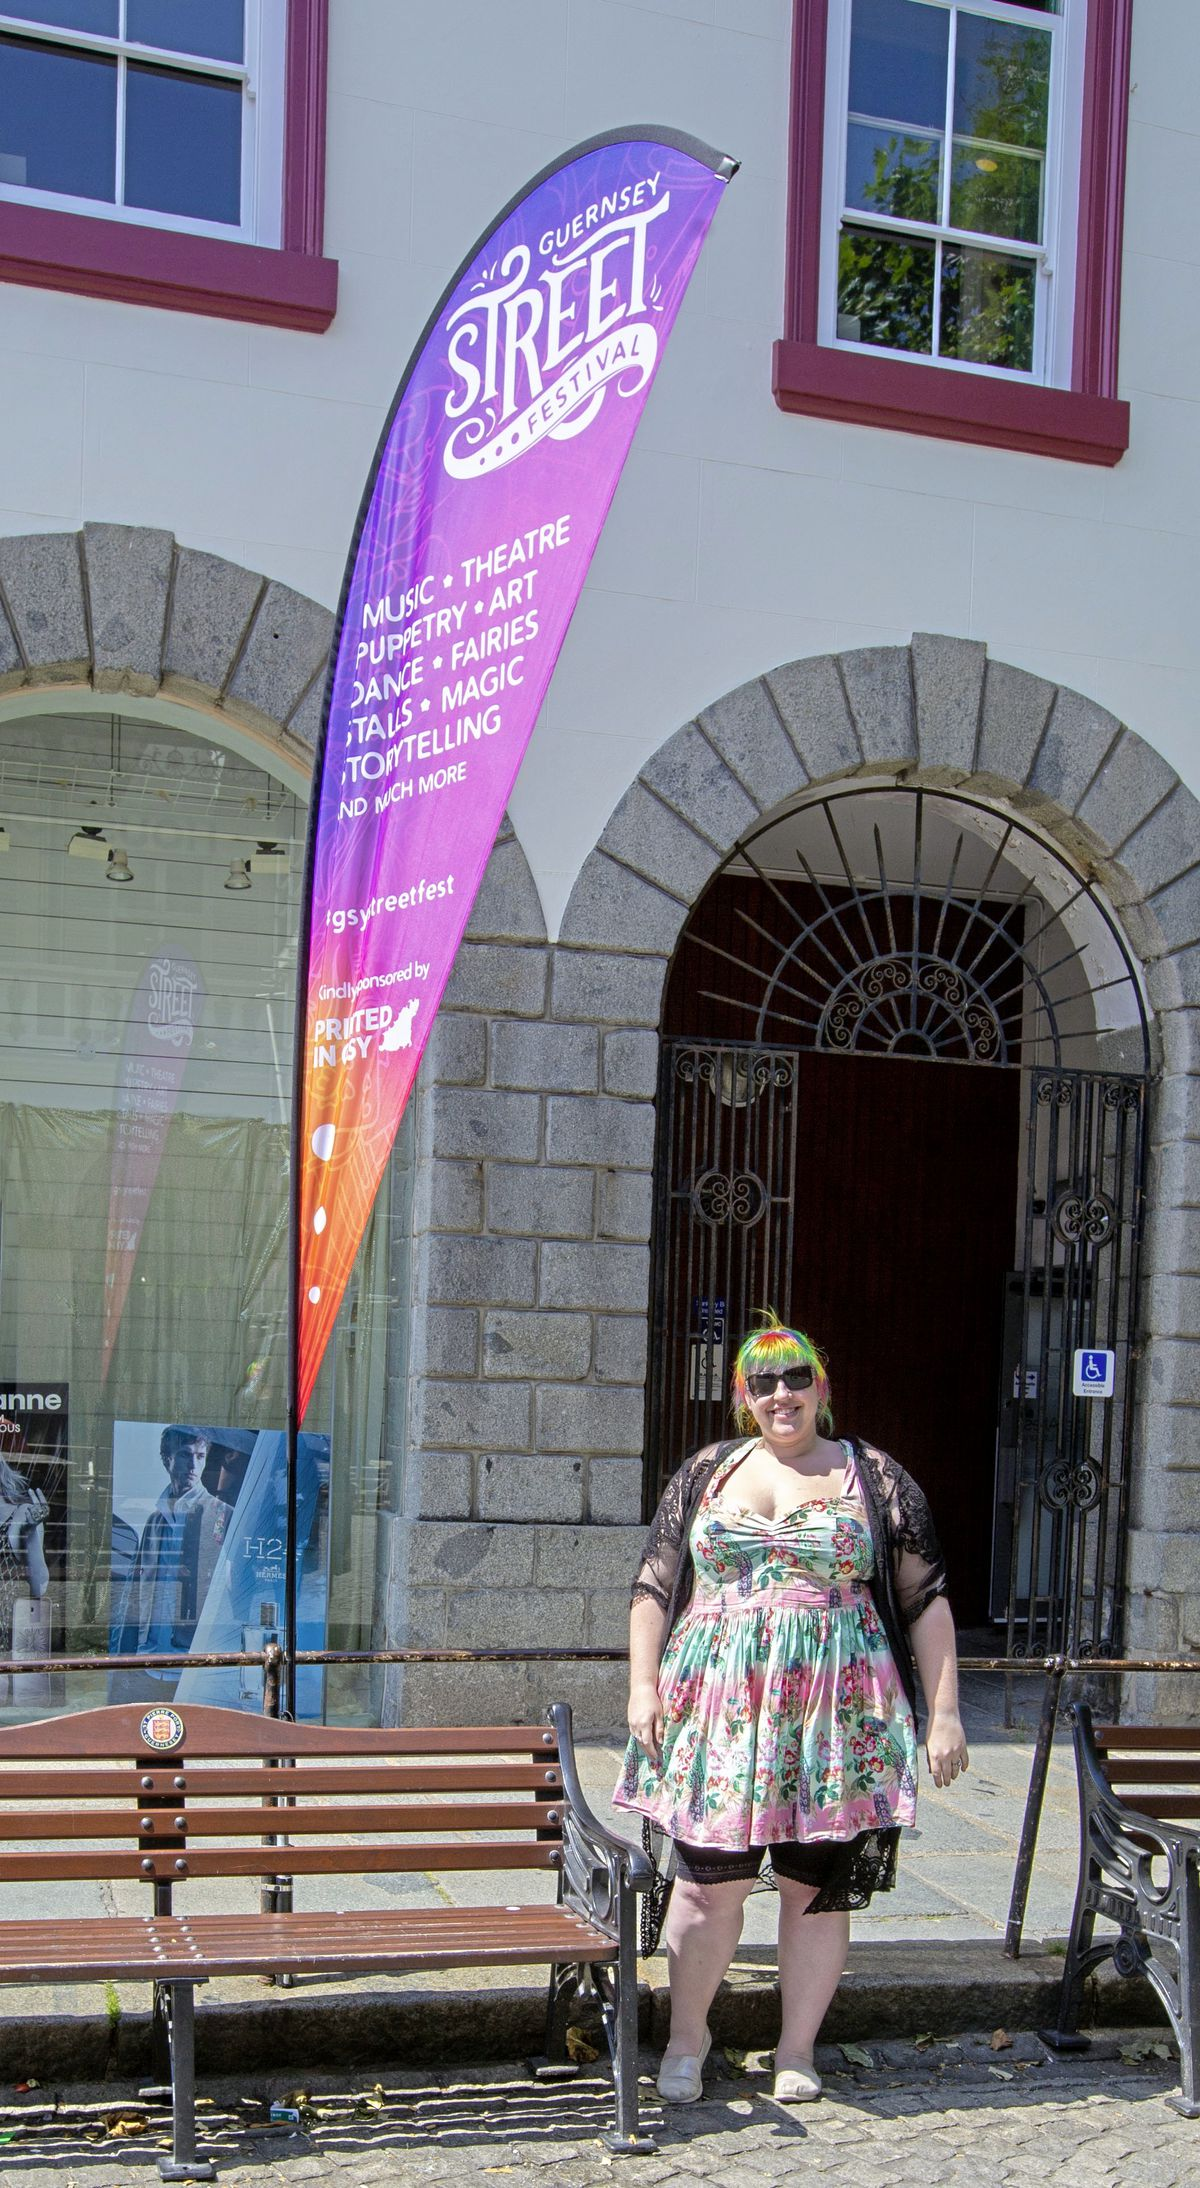 Street Festival creative officer Dominique Ogier. (Picture By Cassidy Jones, 29783391)